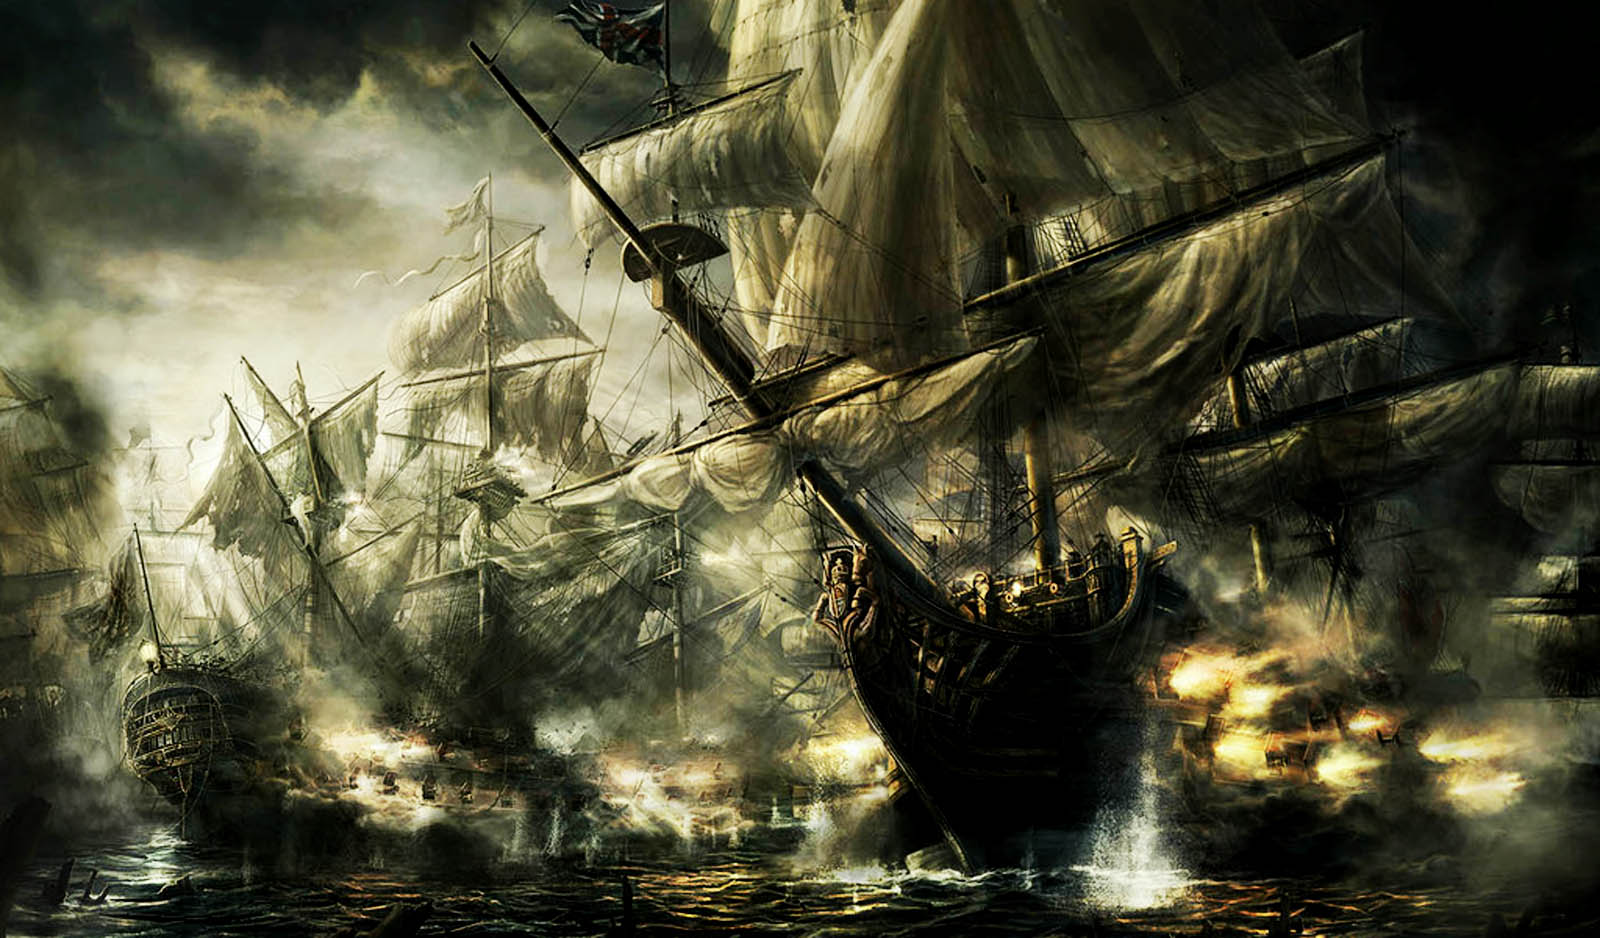 pirate ship wallpaper hd - wallpapersafari